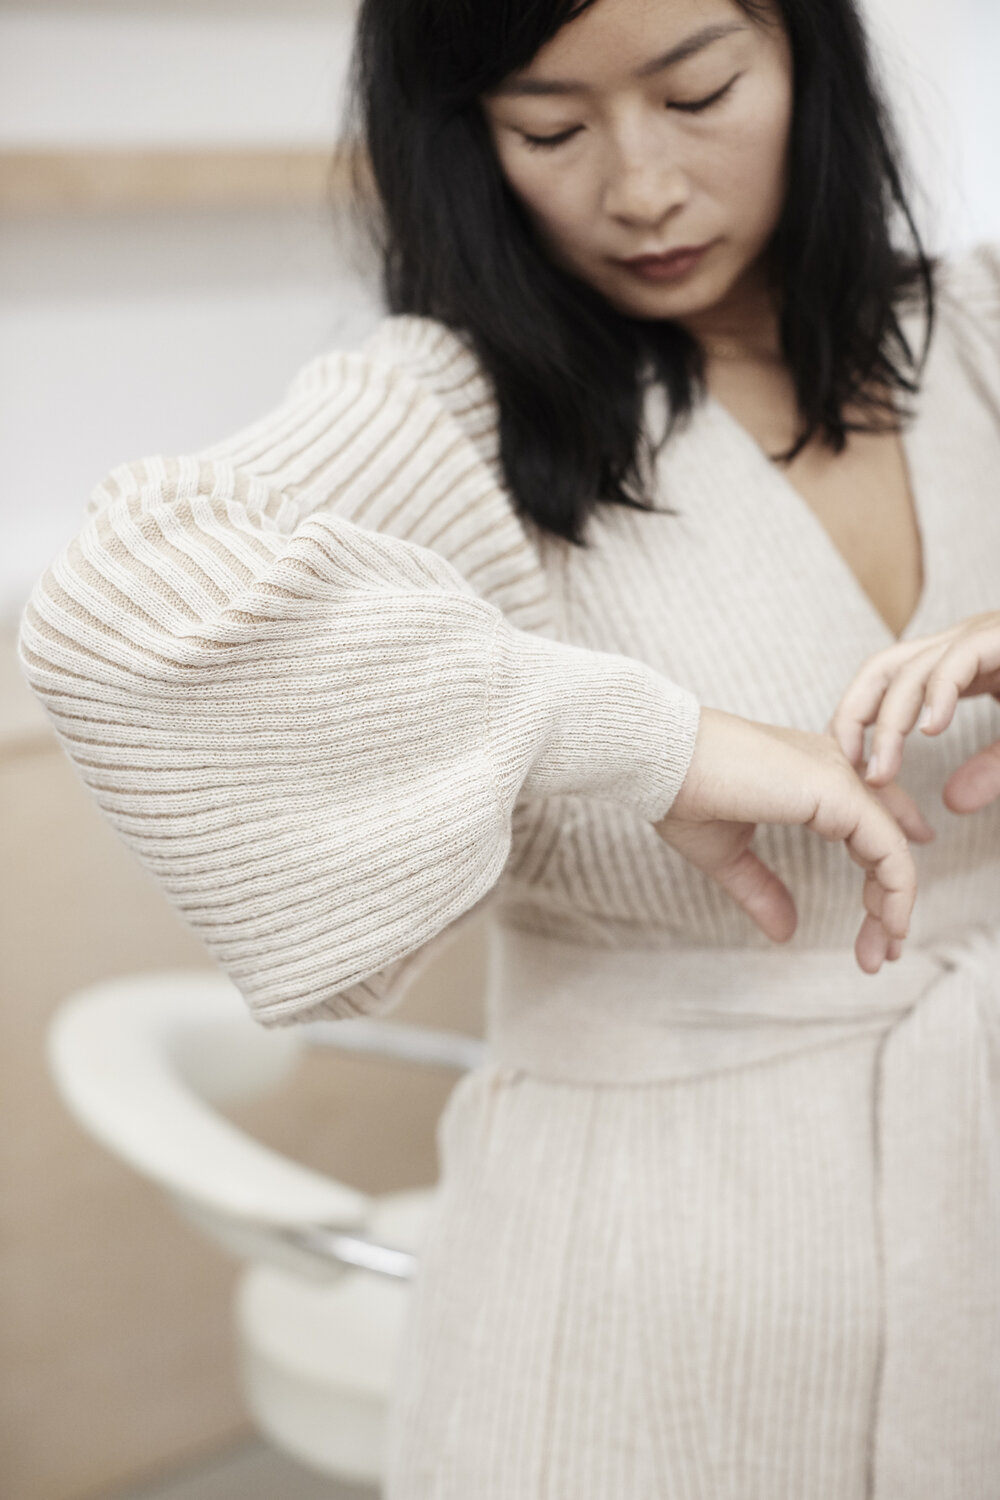 RJ wears   Ines sweater dress   in Ivory & Pale camel combo styled back to RJ's own jean.